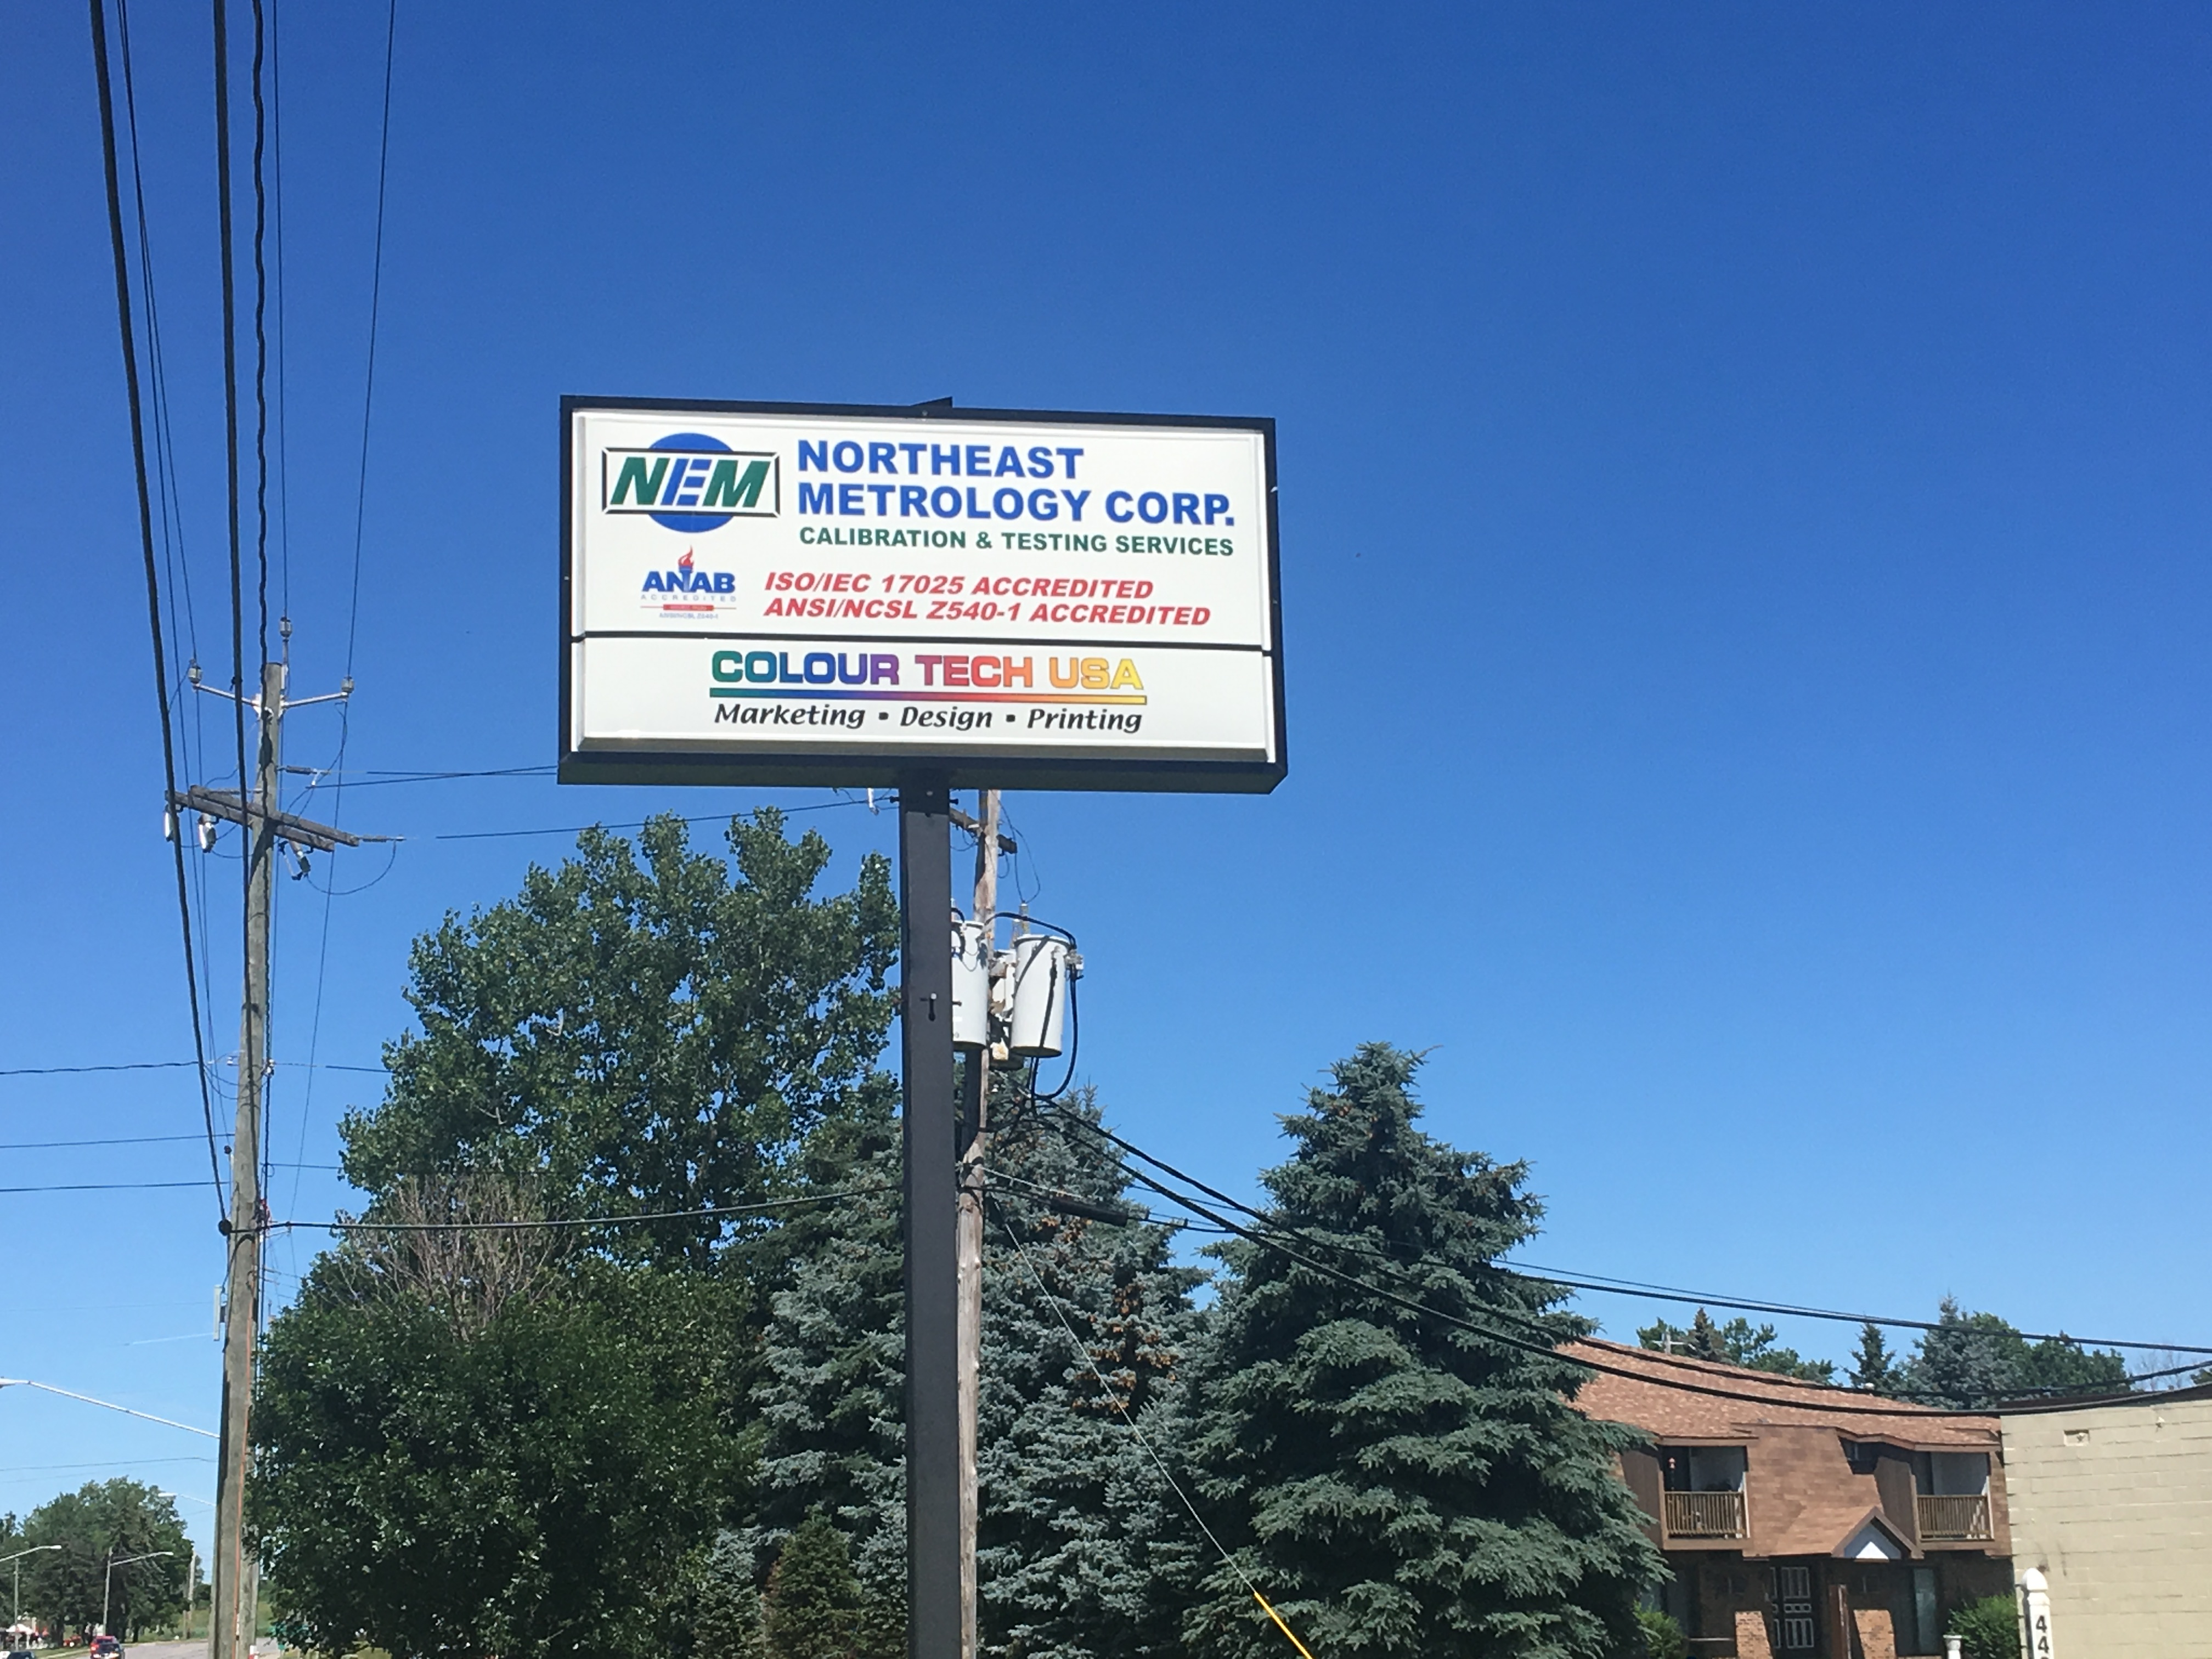 Northeast Metrology Corp. company sign